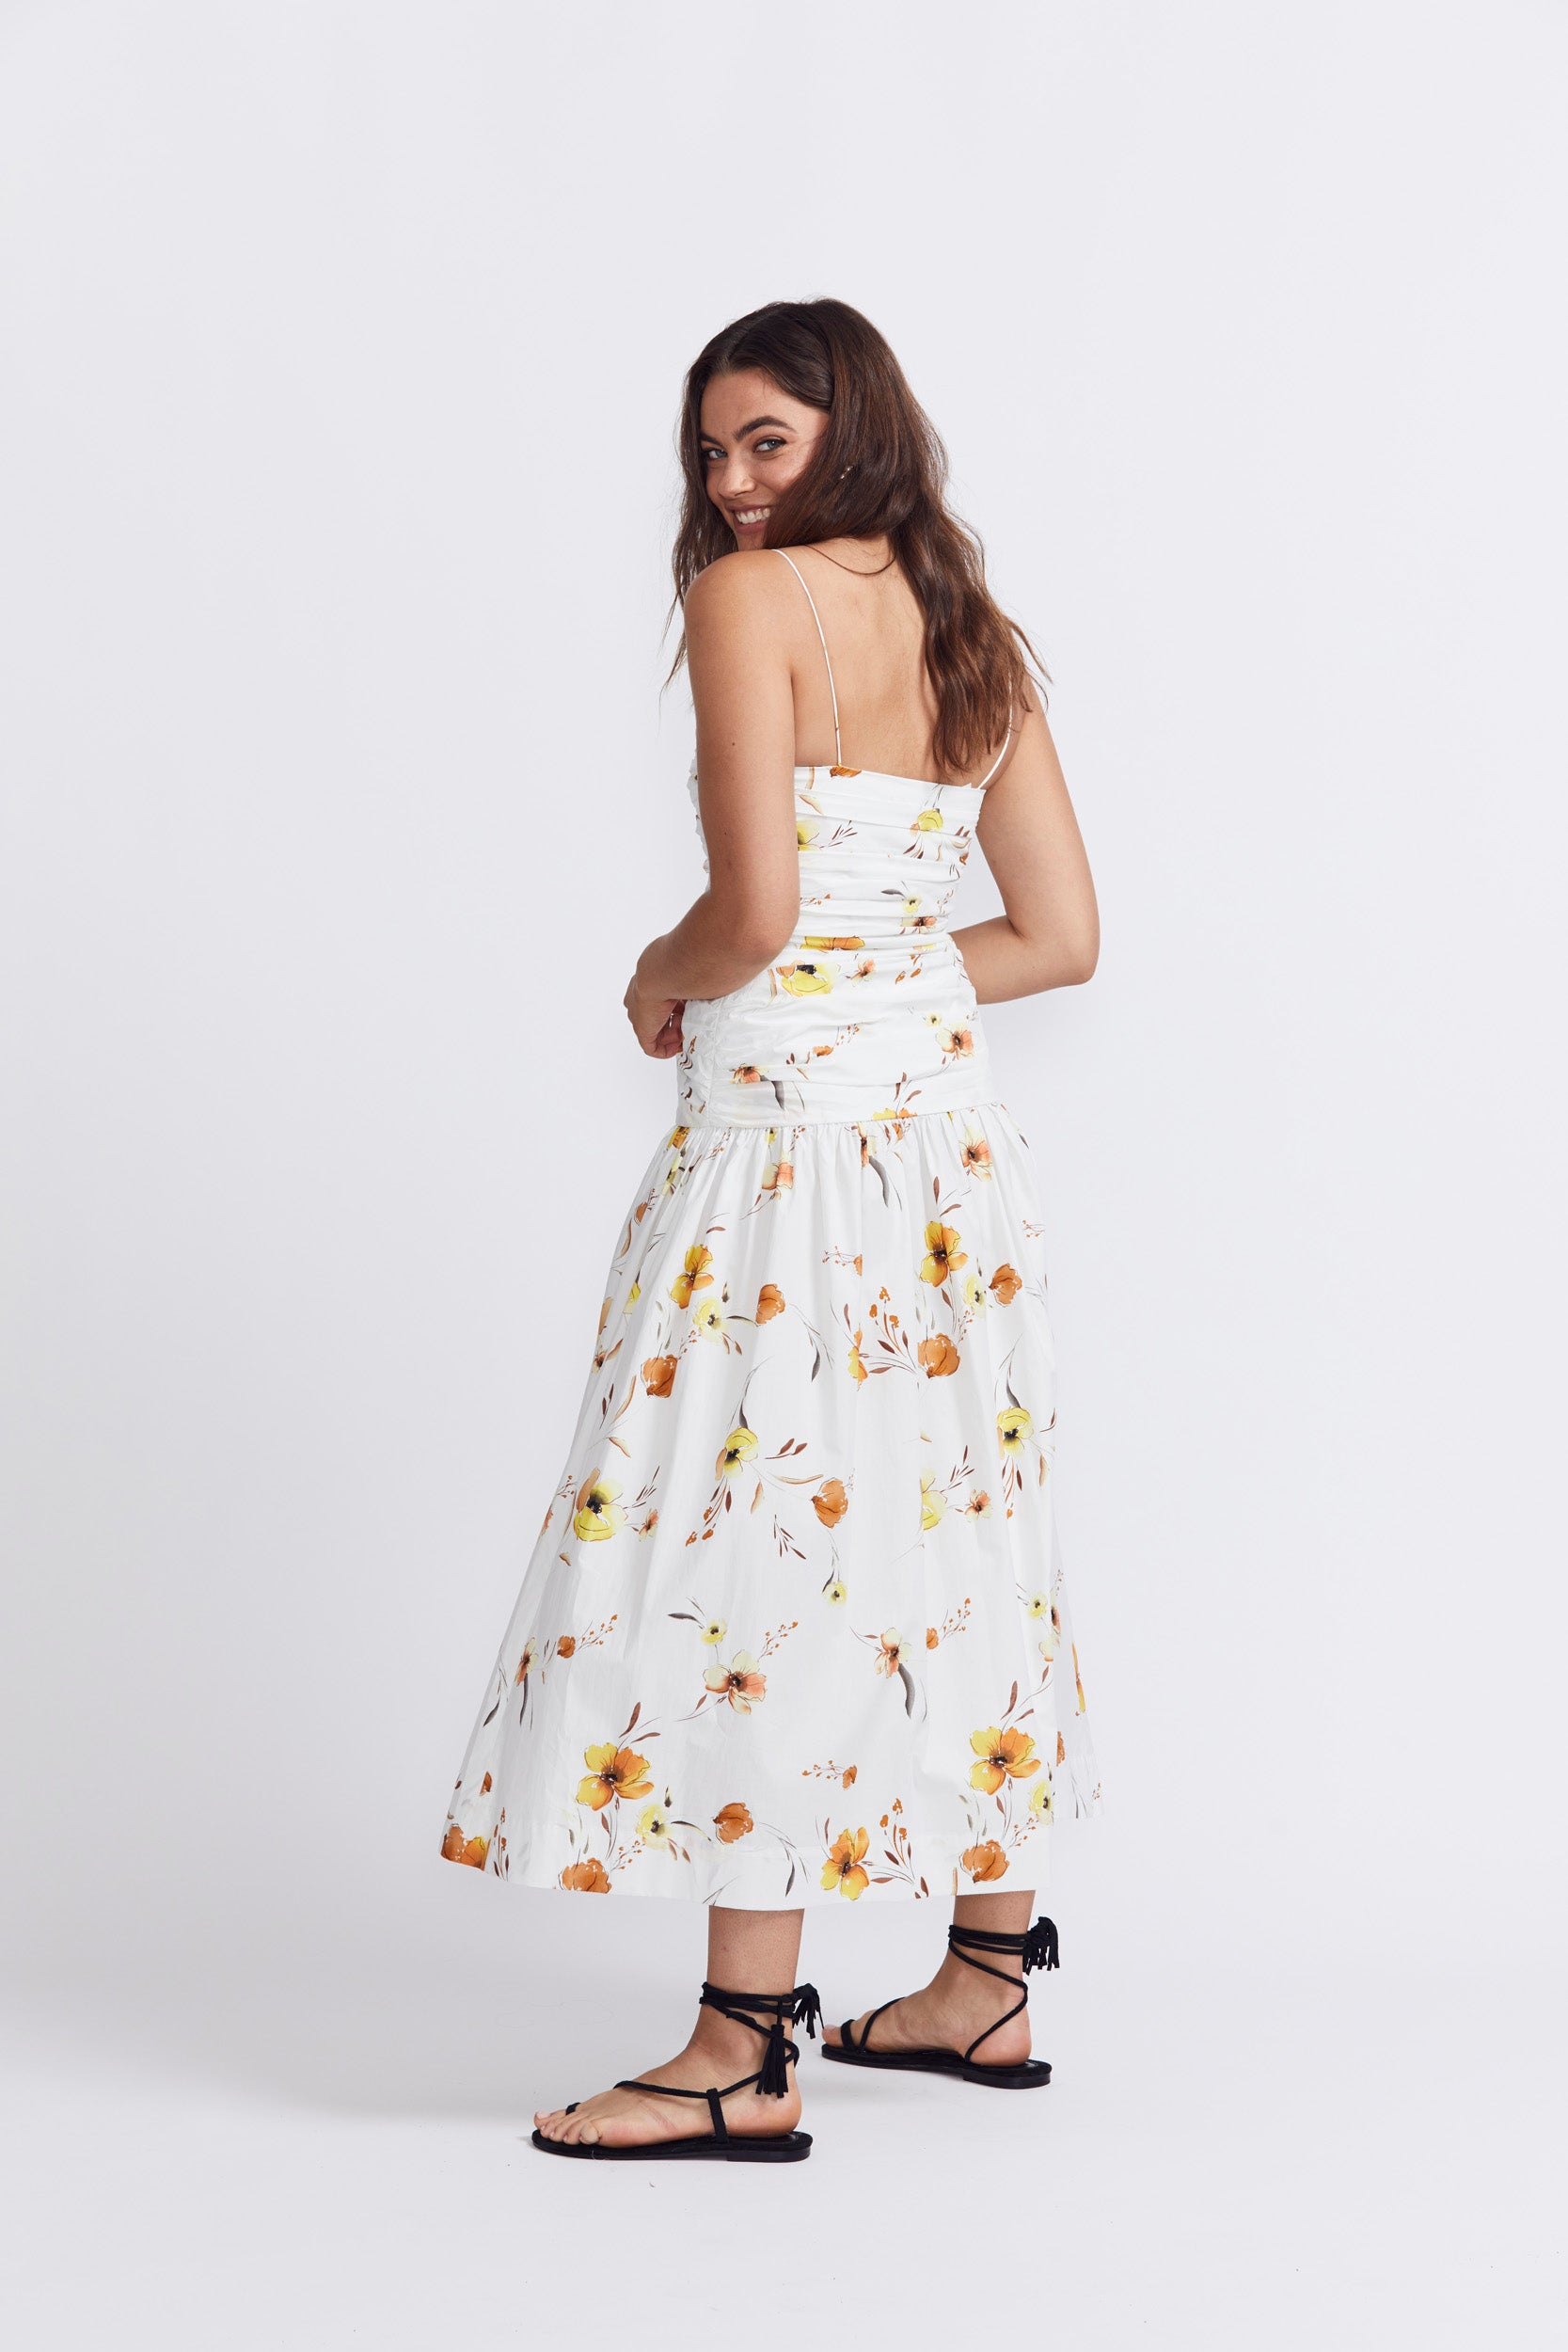 Bec & Bridge Colette Midi Dress - Print